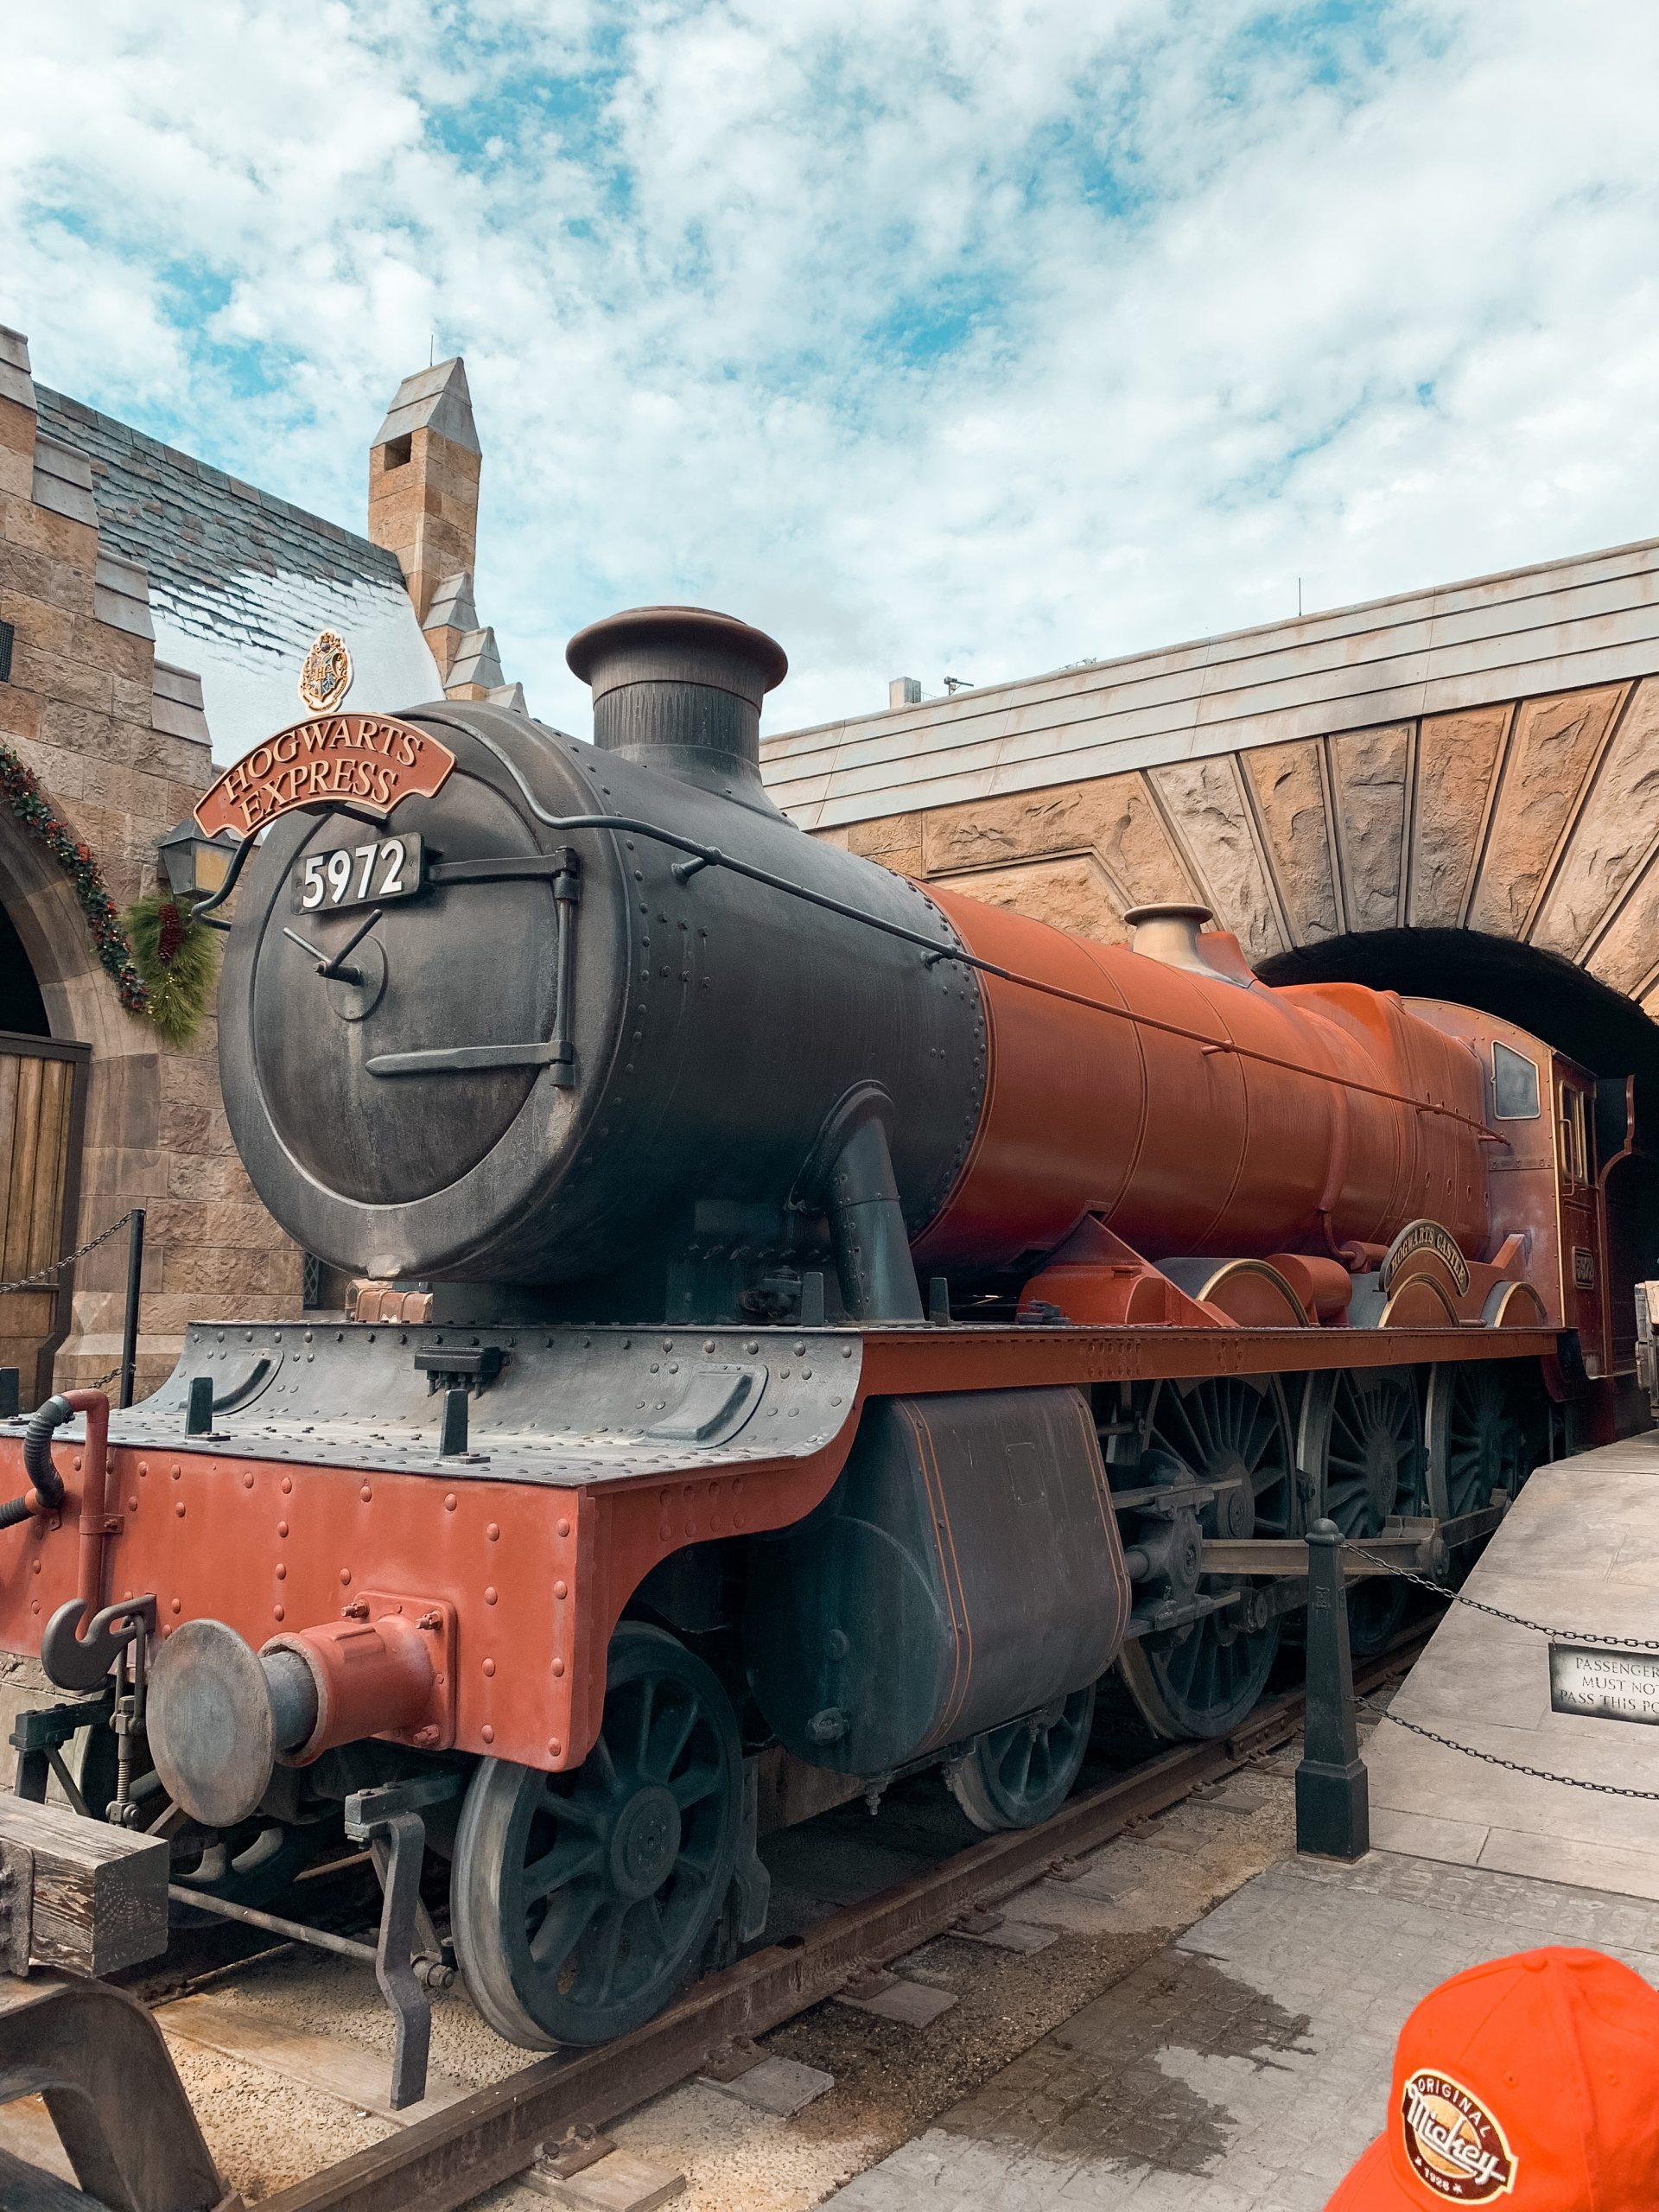 The Hogwarts Express at Universal Studios Orlando